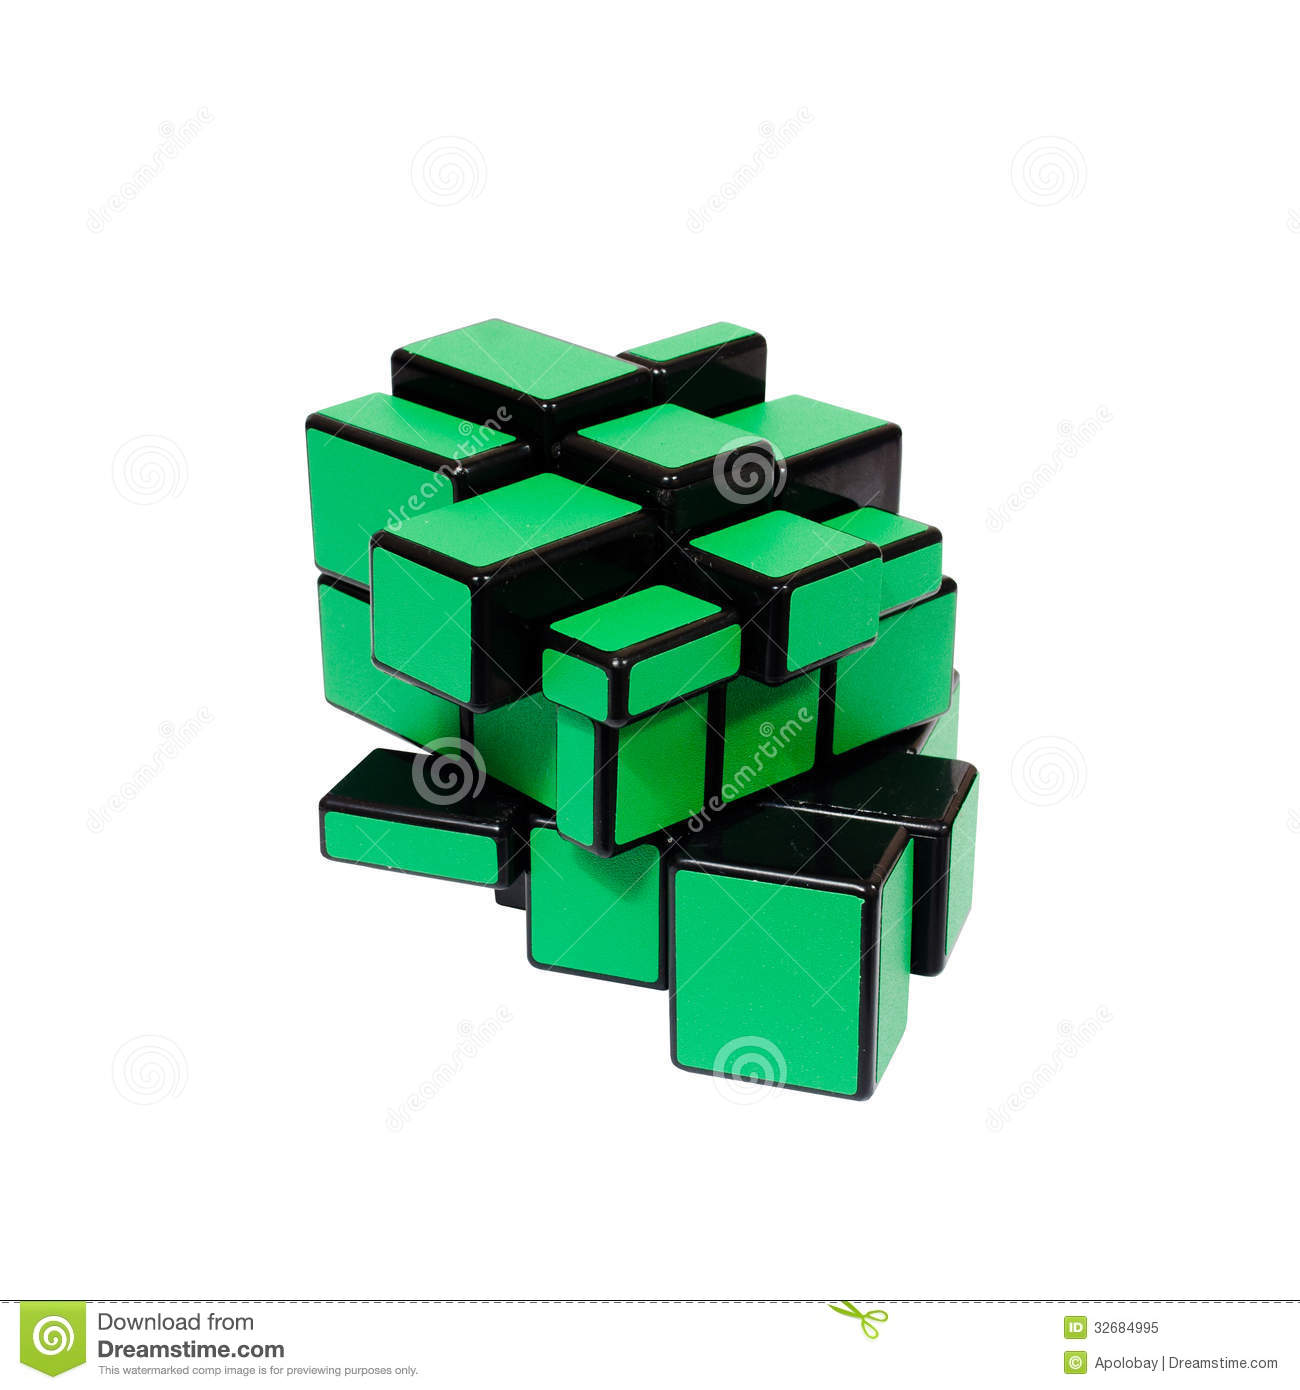 Green Developing Toy Isolated On White Royalty Free Stock Photo ...: dreamstime.com/royalty-free-stock-photo-green-developing-toy...